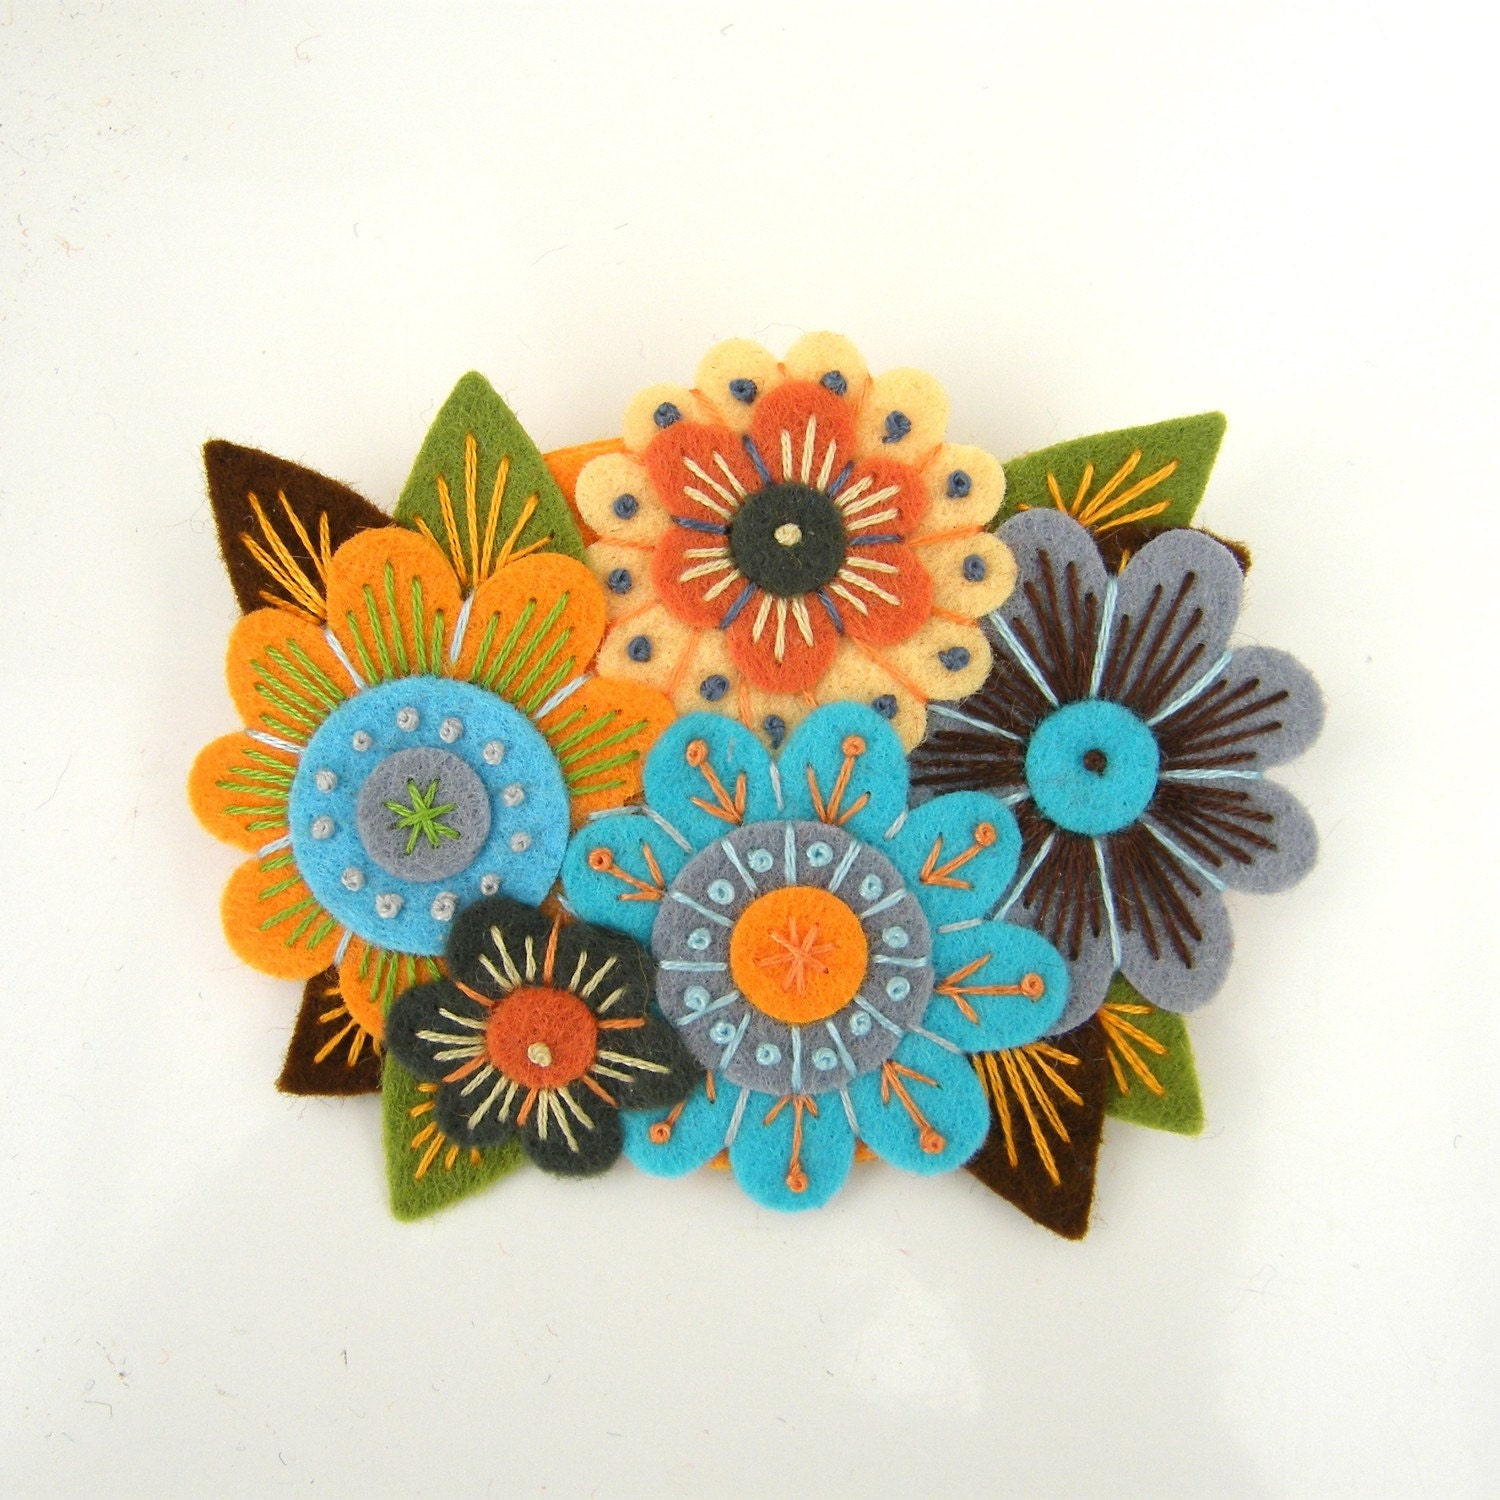 VINTAGE BOUQUET, FELT FLOWER BROOCH WITH FREEFORM EMBROIDERY